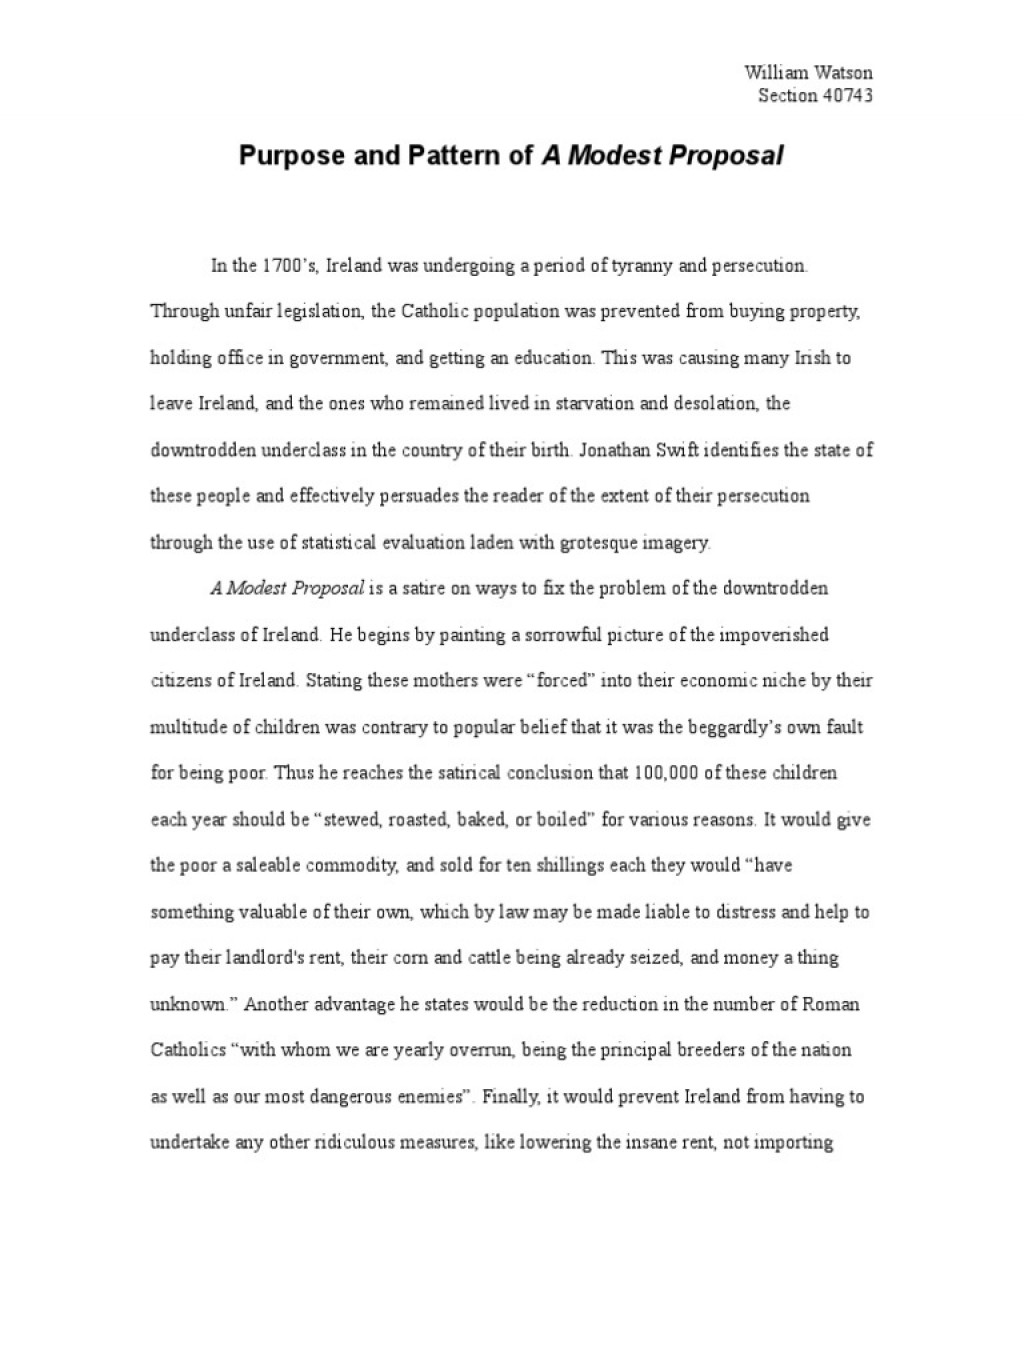 029 Satirical Essay Topics Example Worksheet Modest Proposal Answers Grass Frightening Ideas For High School Topic Large